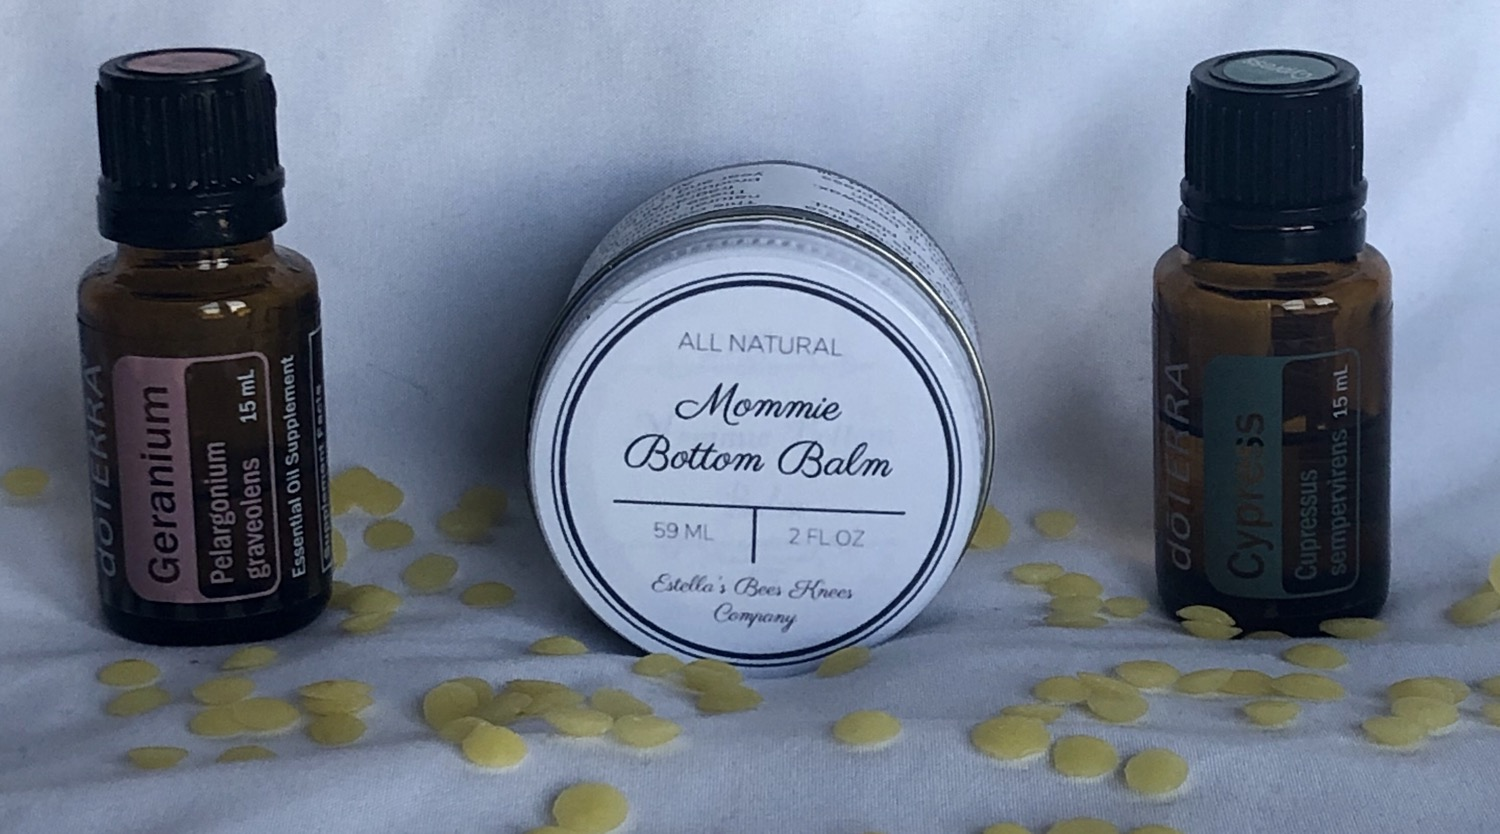 Mommie Bottom Balm